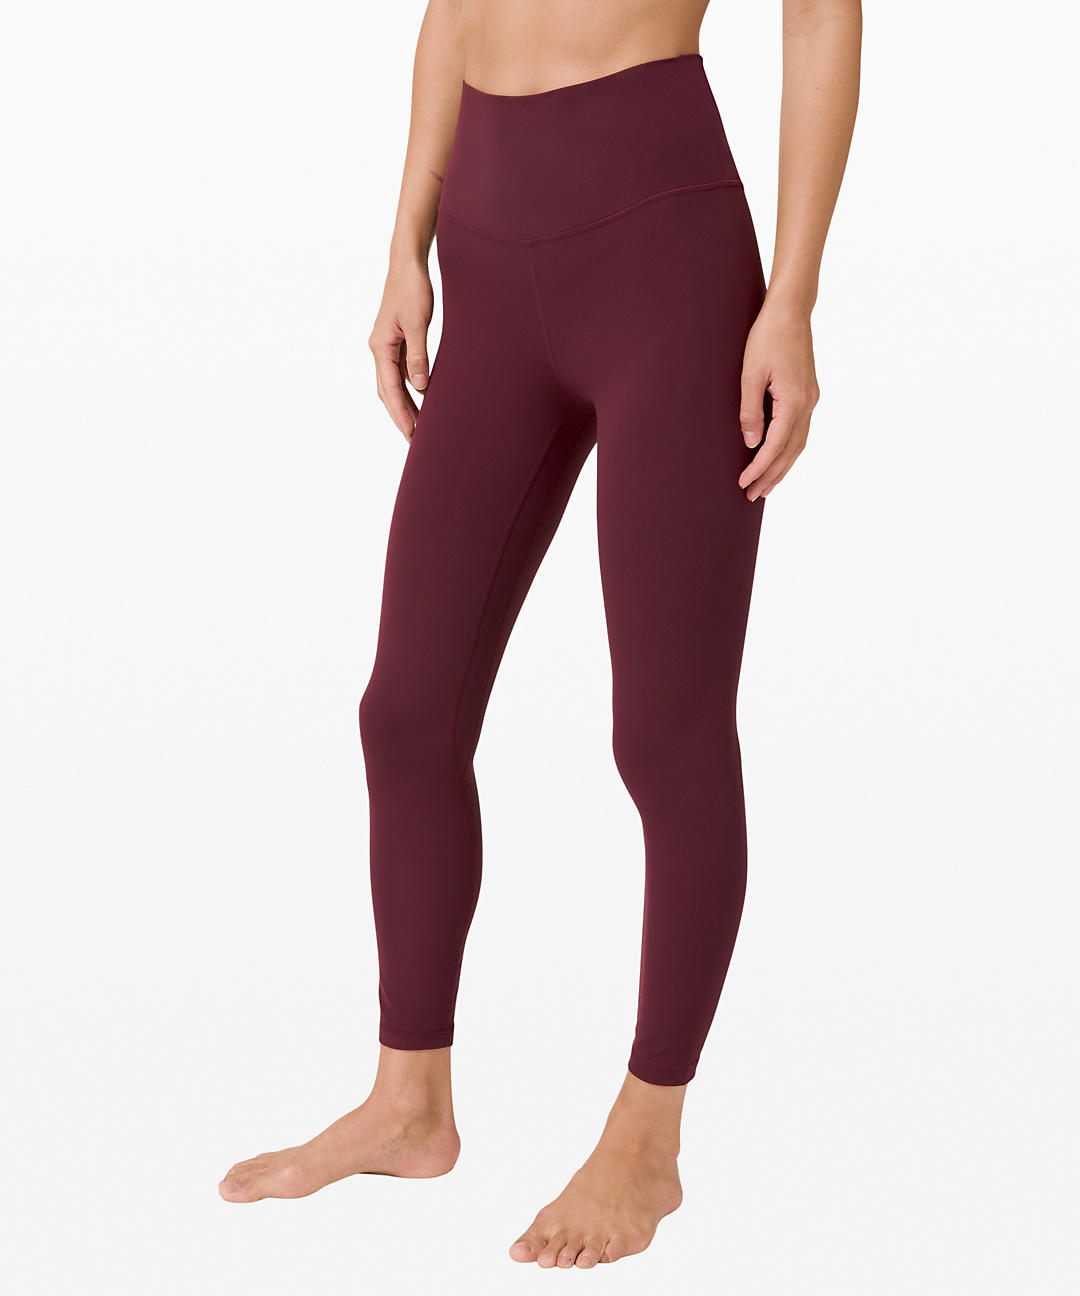 Lululemon align leggings best women's activewear brands